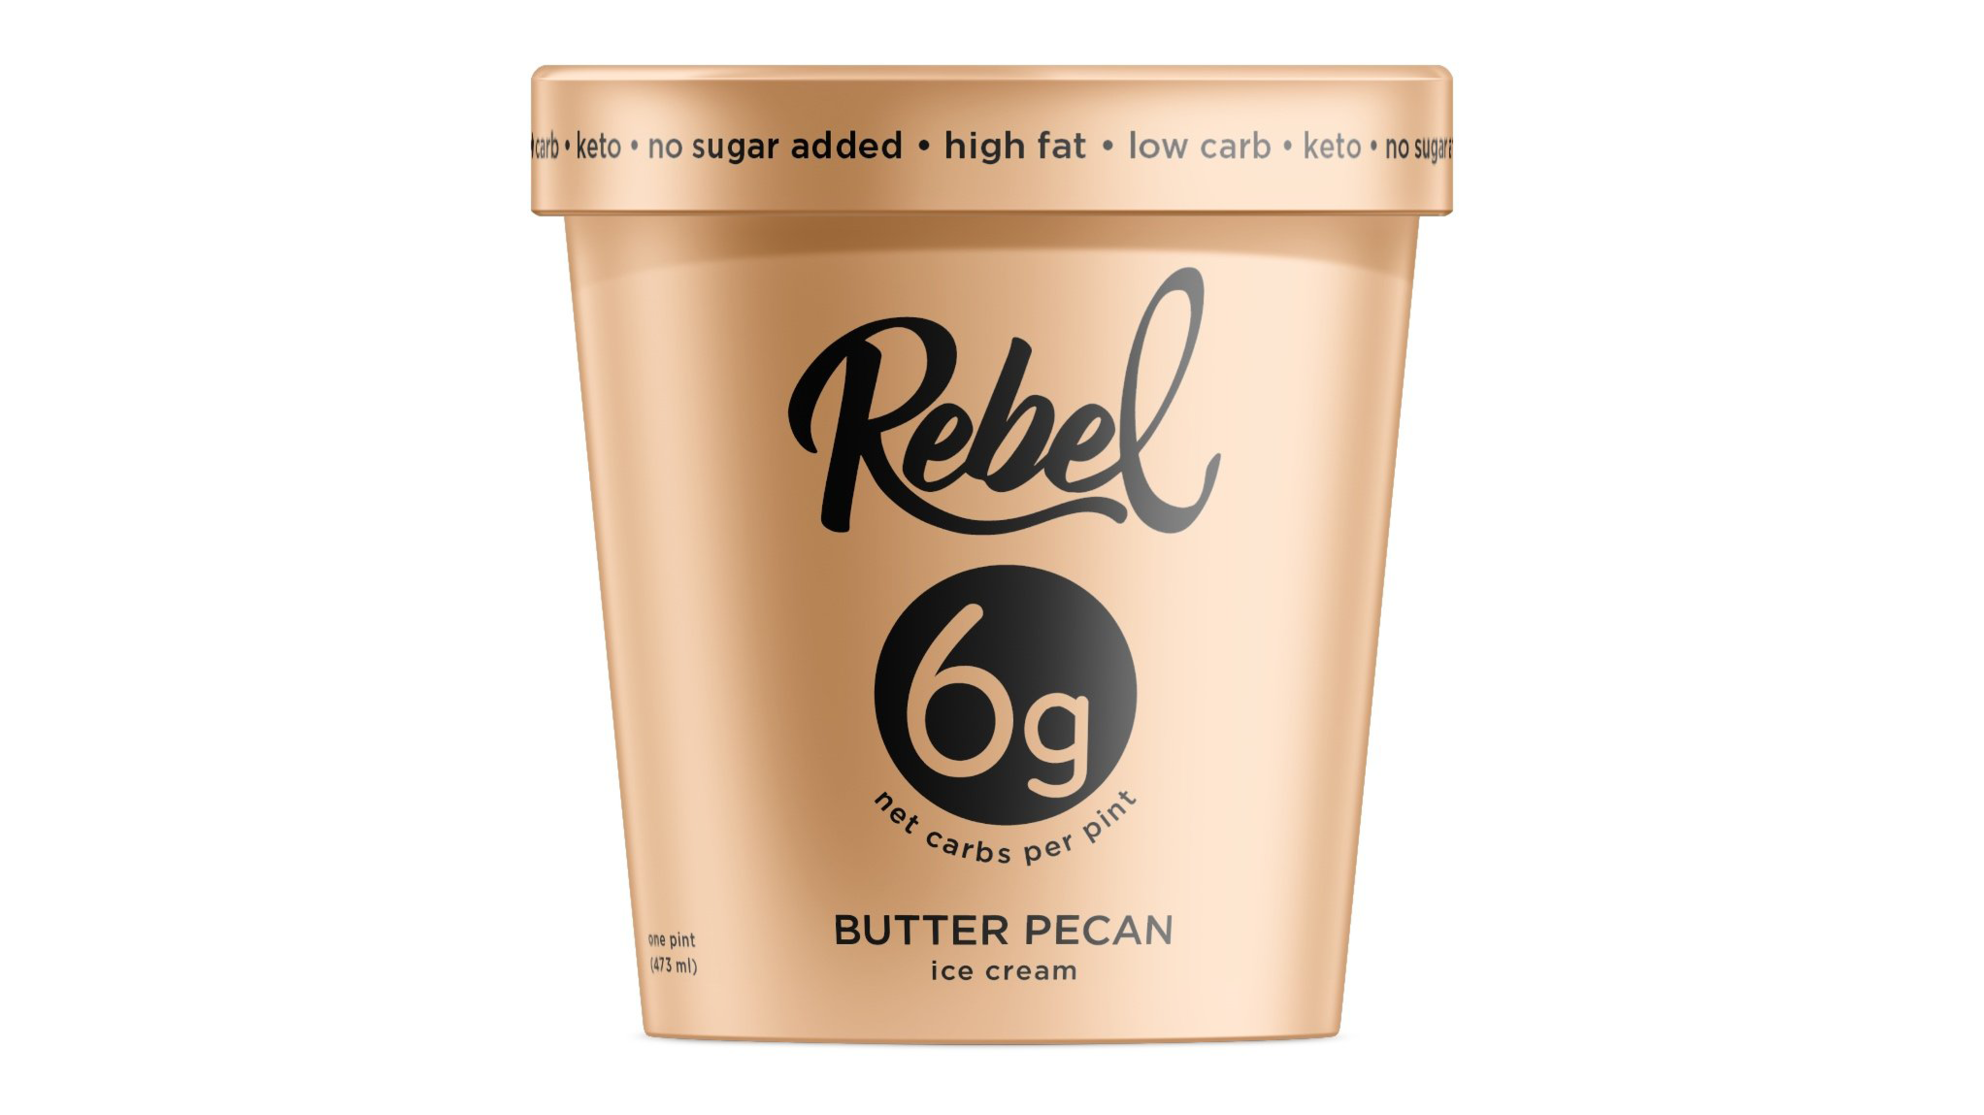 rebel-keto-icecream